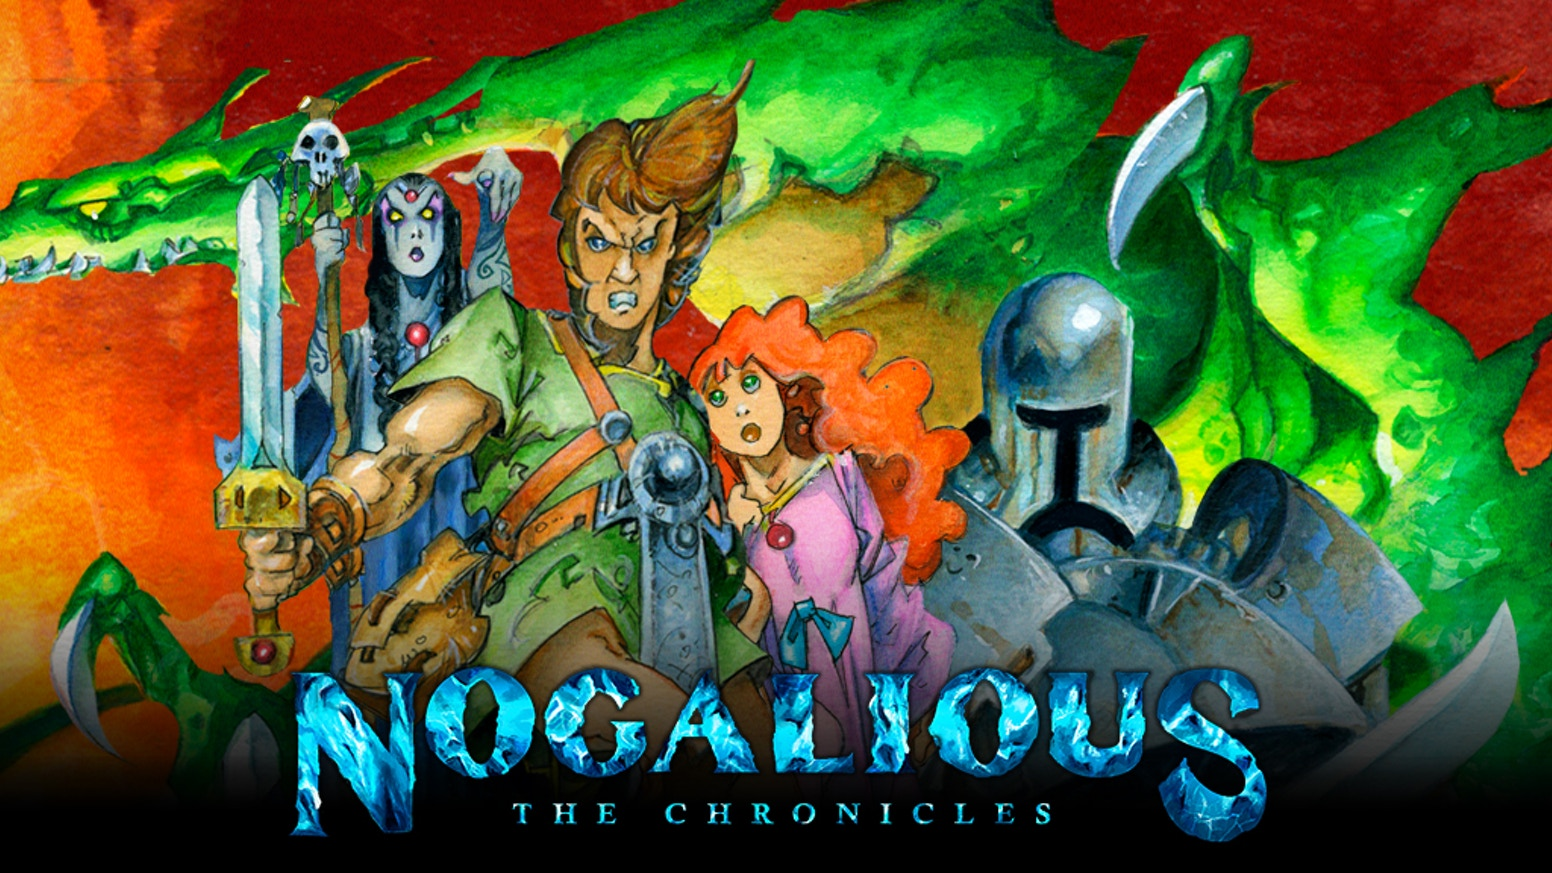 Nogalious is a retro-style platformer/puzzle game where you gain a few wizard abilities in order to progress and save the day.